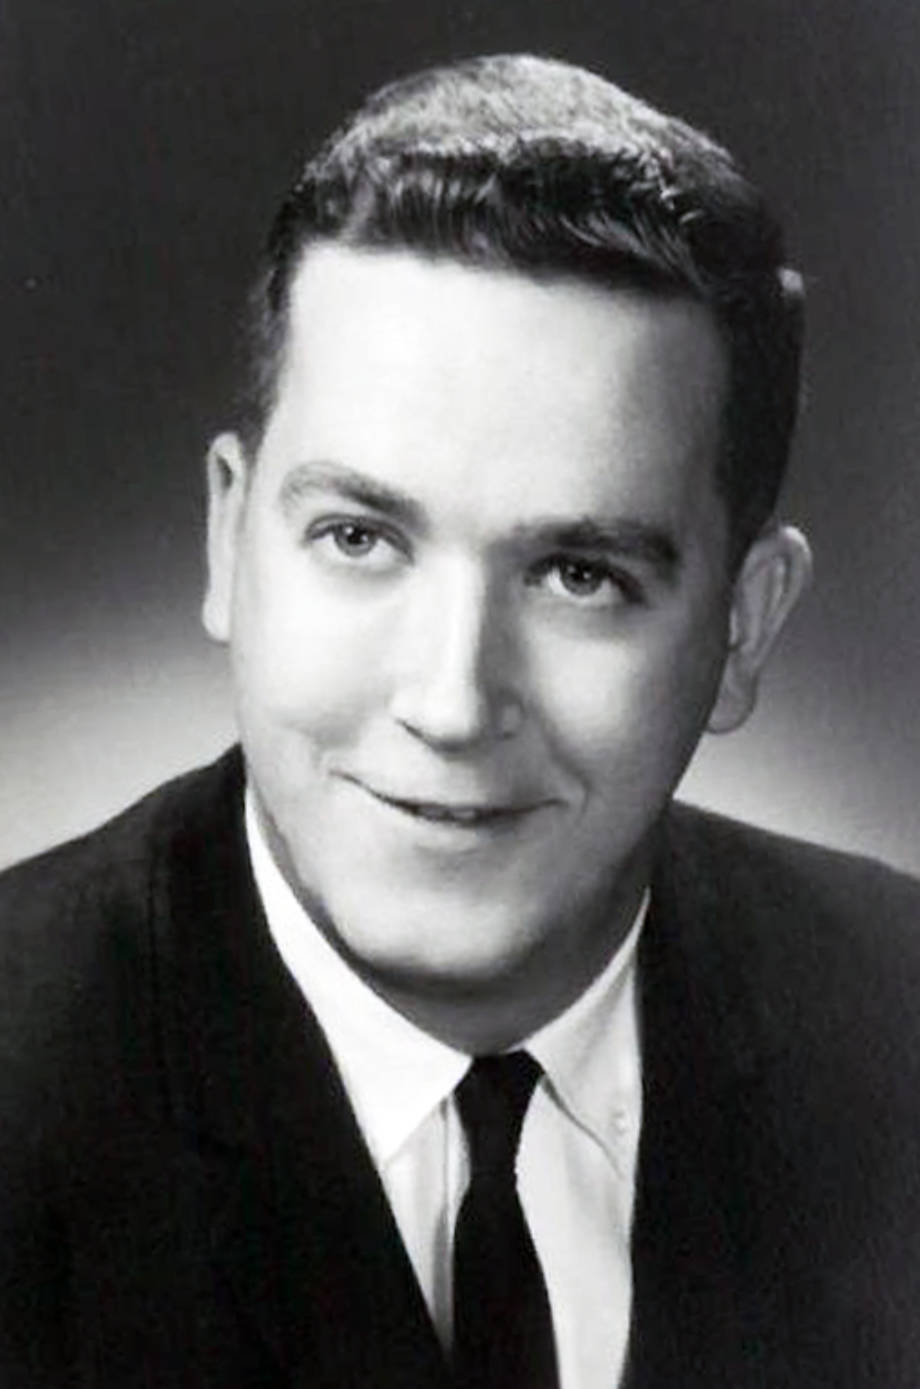 Ron Wenneker, in his early 20s. This is believed to be one of the first professional photos that he had taken after becoming an insurance agent. Photo courtesy of Robin Wenneker.